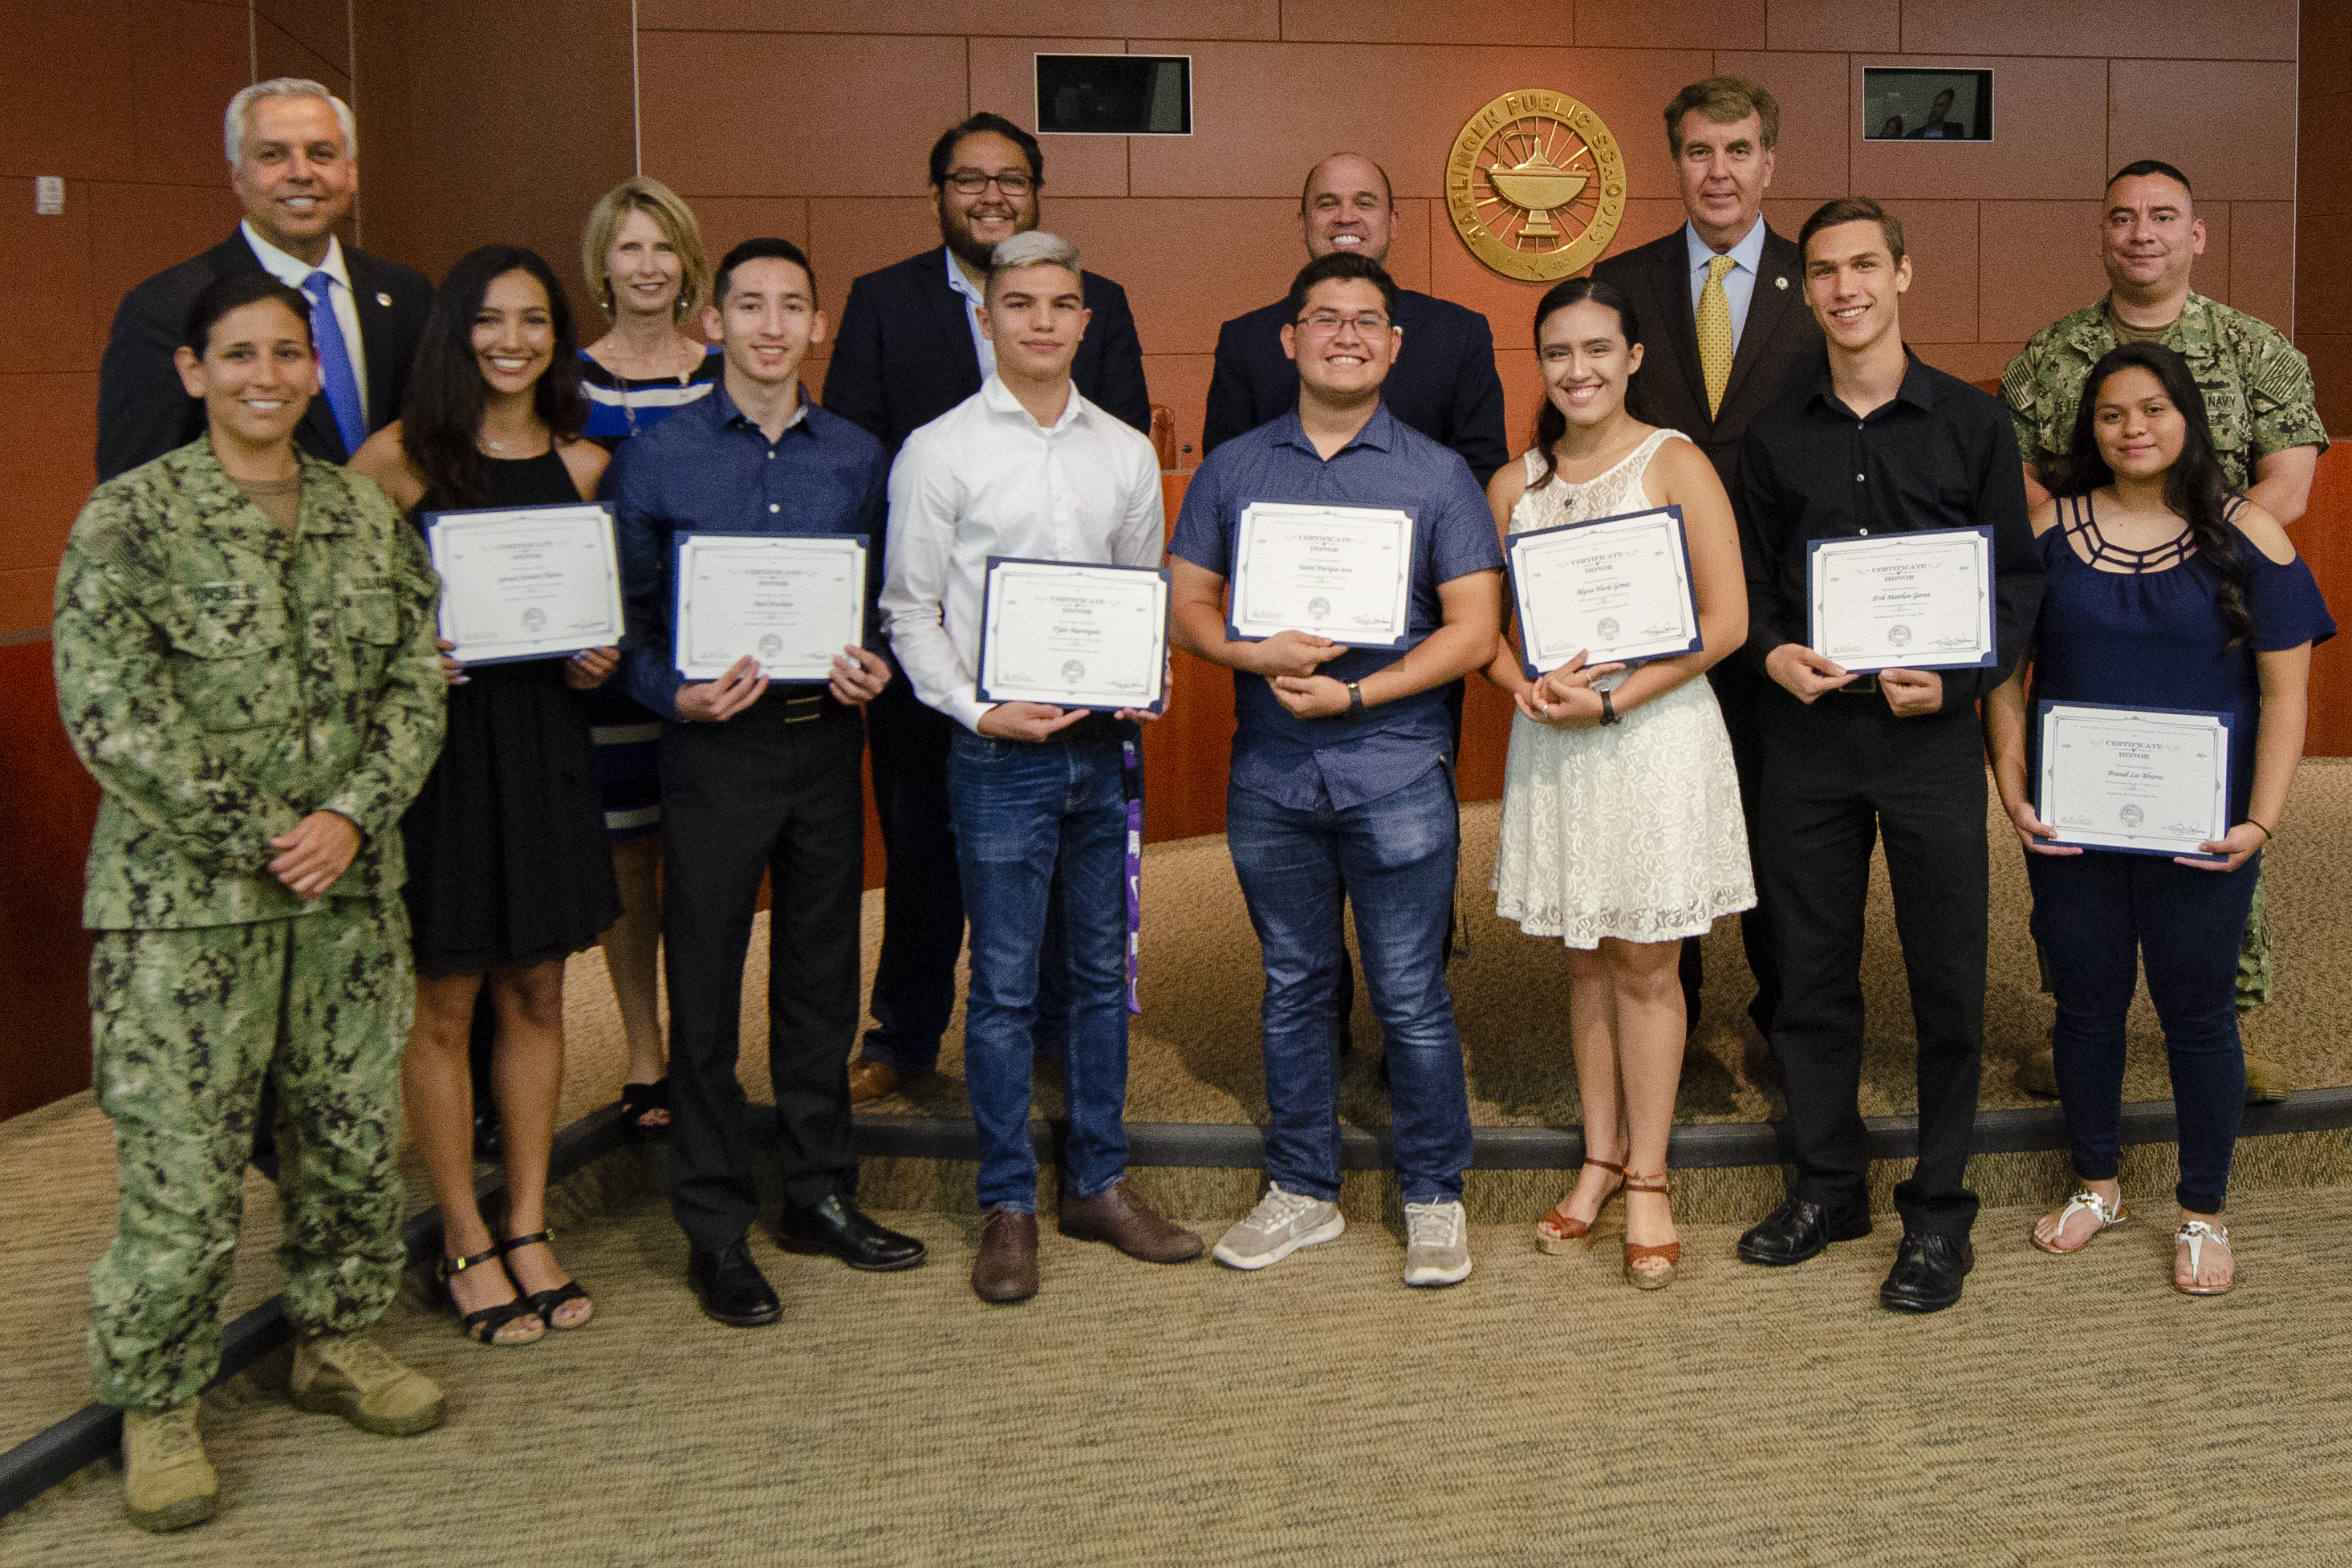 HCISD honors graduates joining the armed forces